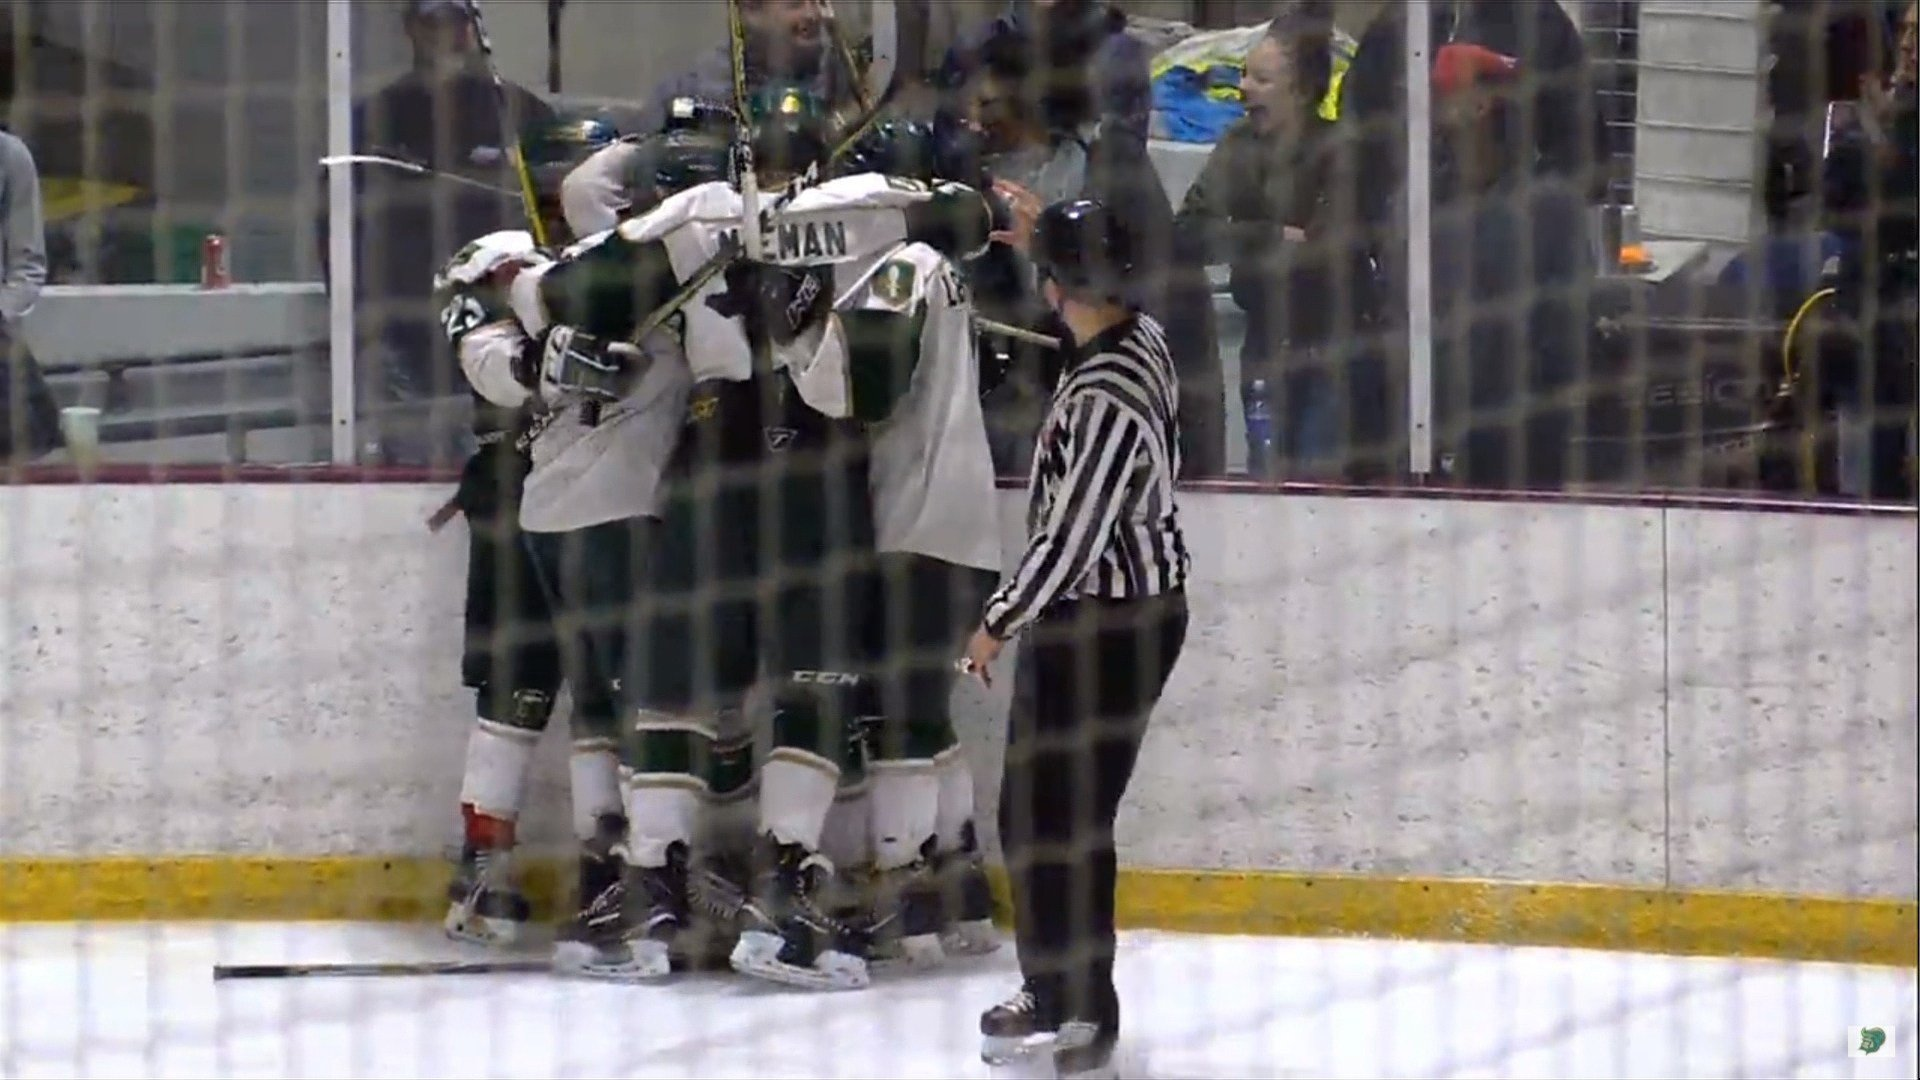 The Metros beat Mason City on Sunday, 4-2, claiming the MHSHL championship.